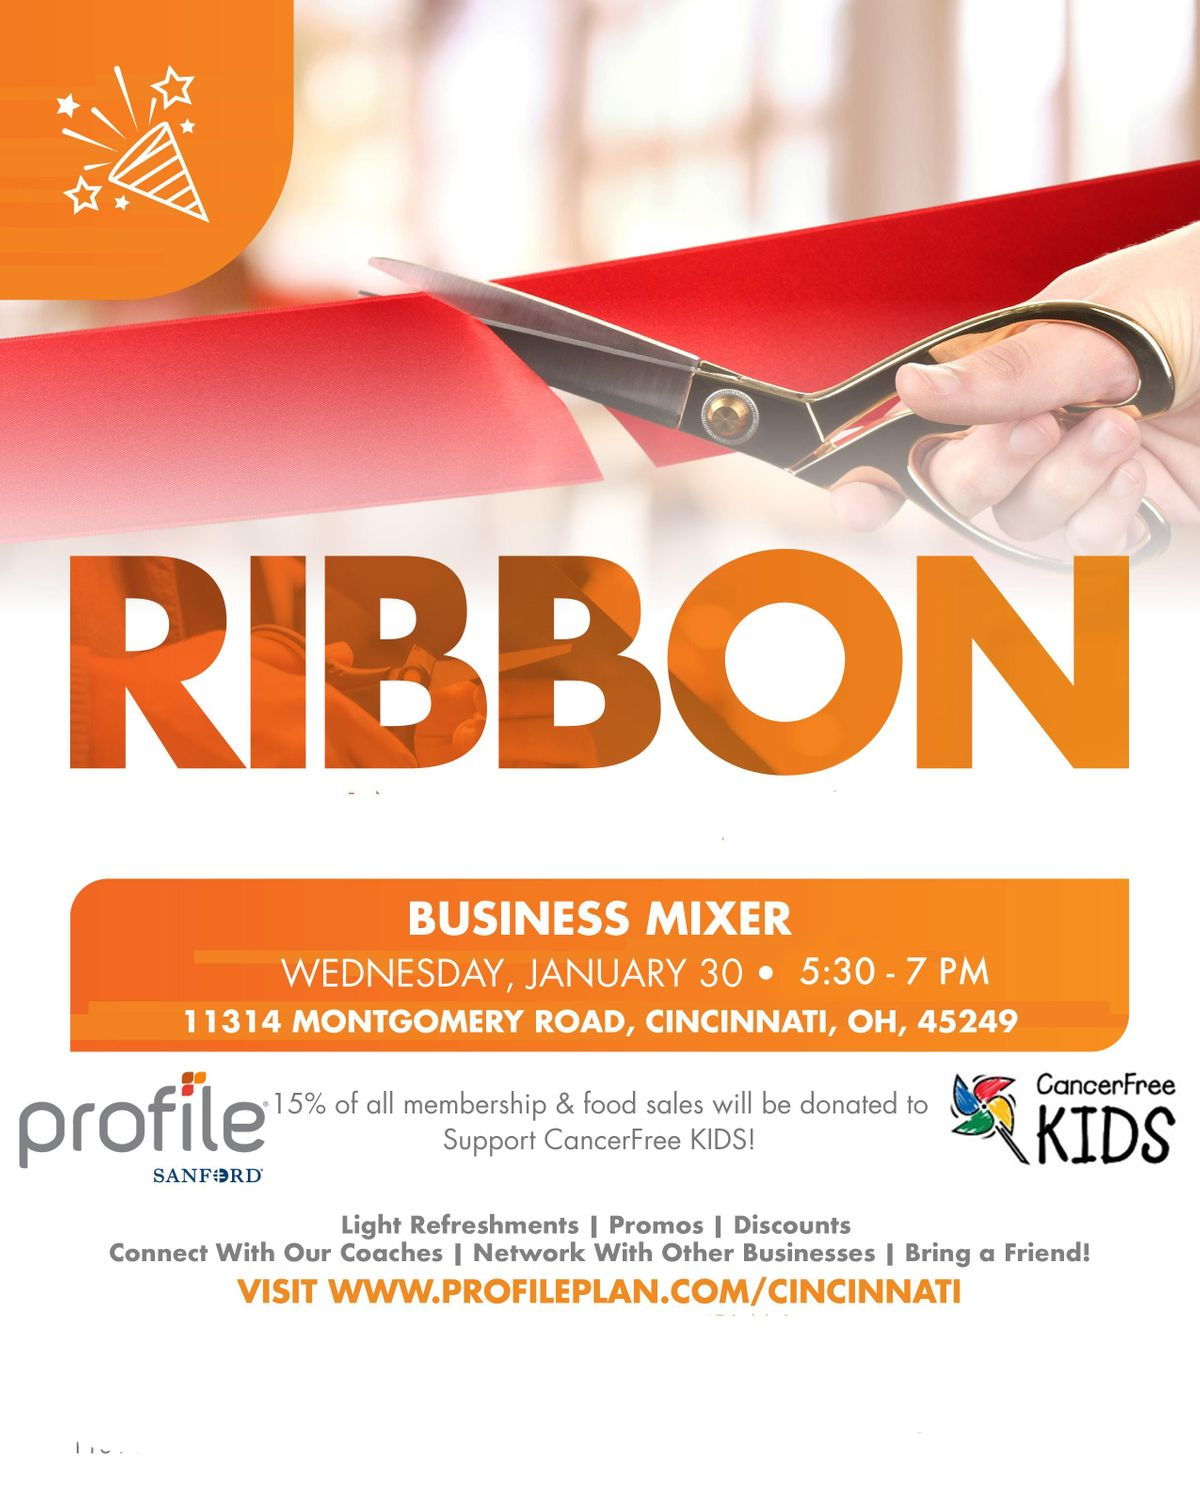 Profile by Sanford benefiting CancerFree KIDS Business Mixer